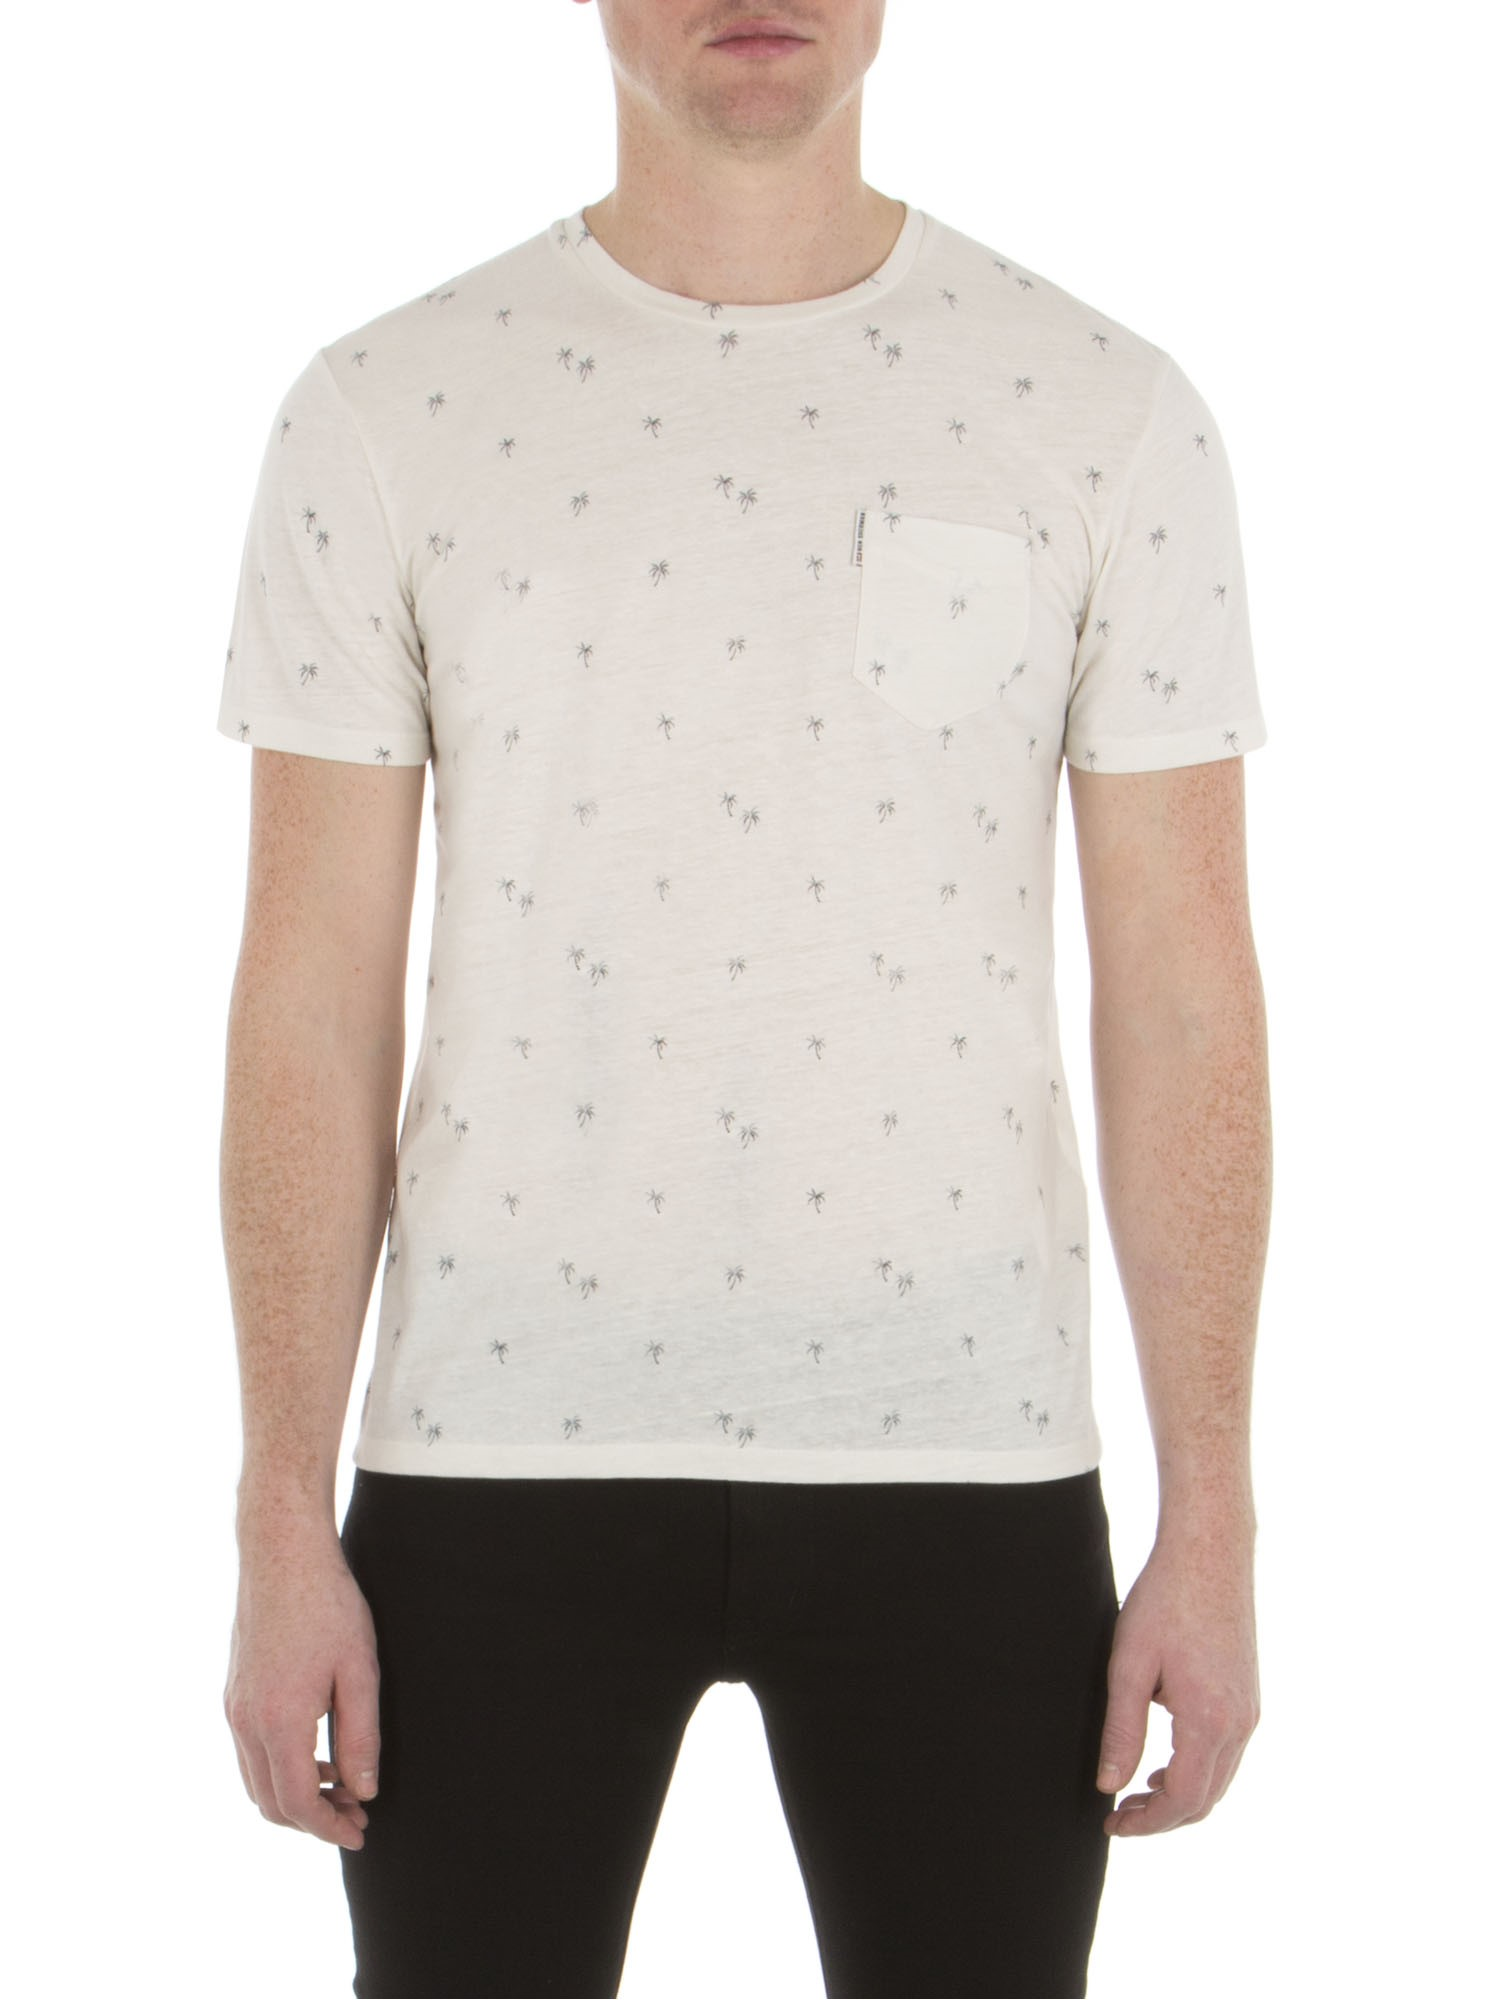 Ben Sherman Off White Palm Tree Print T-Shirt